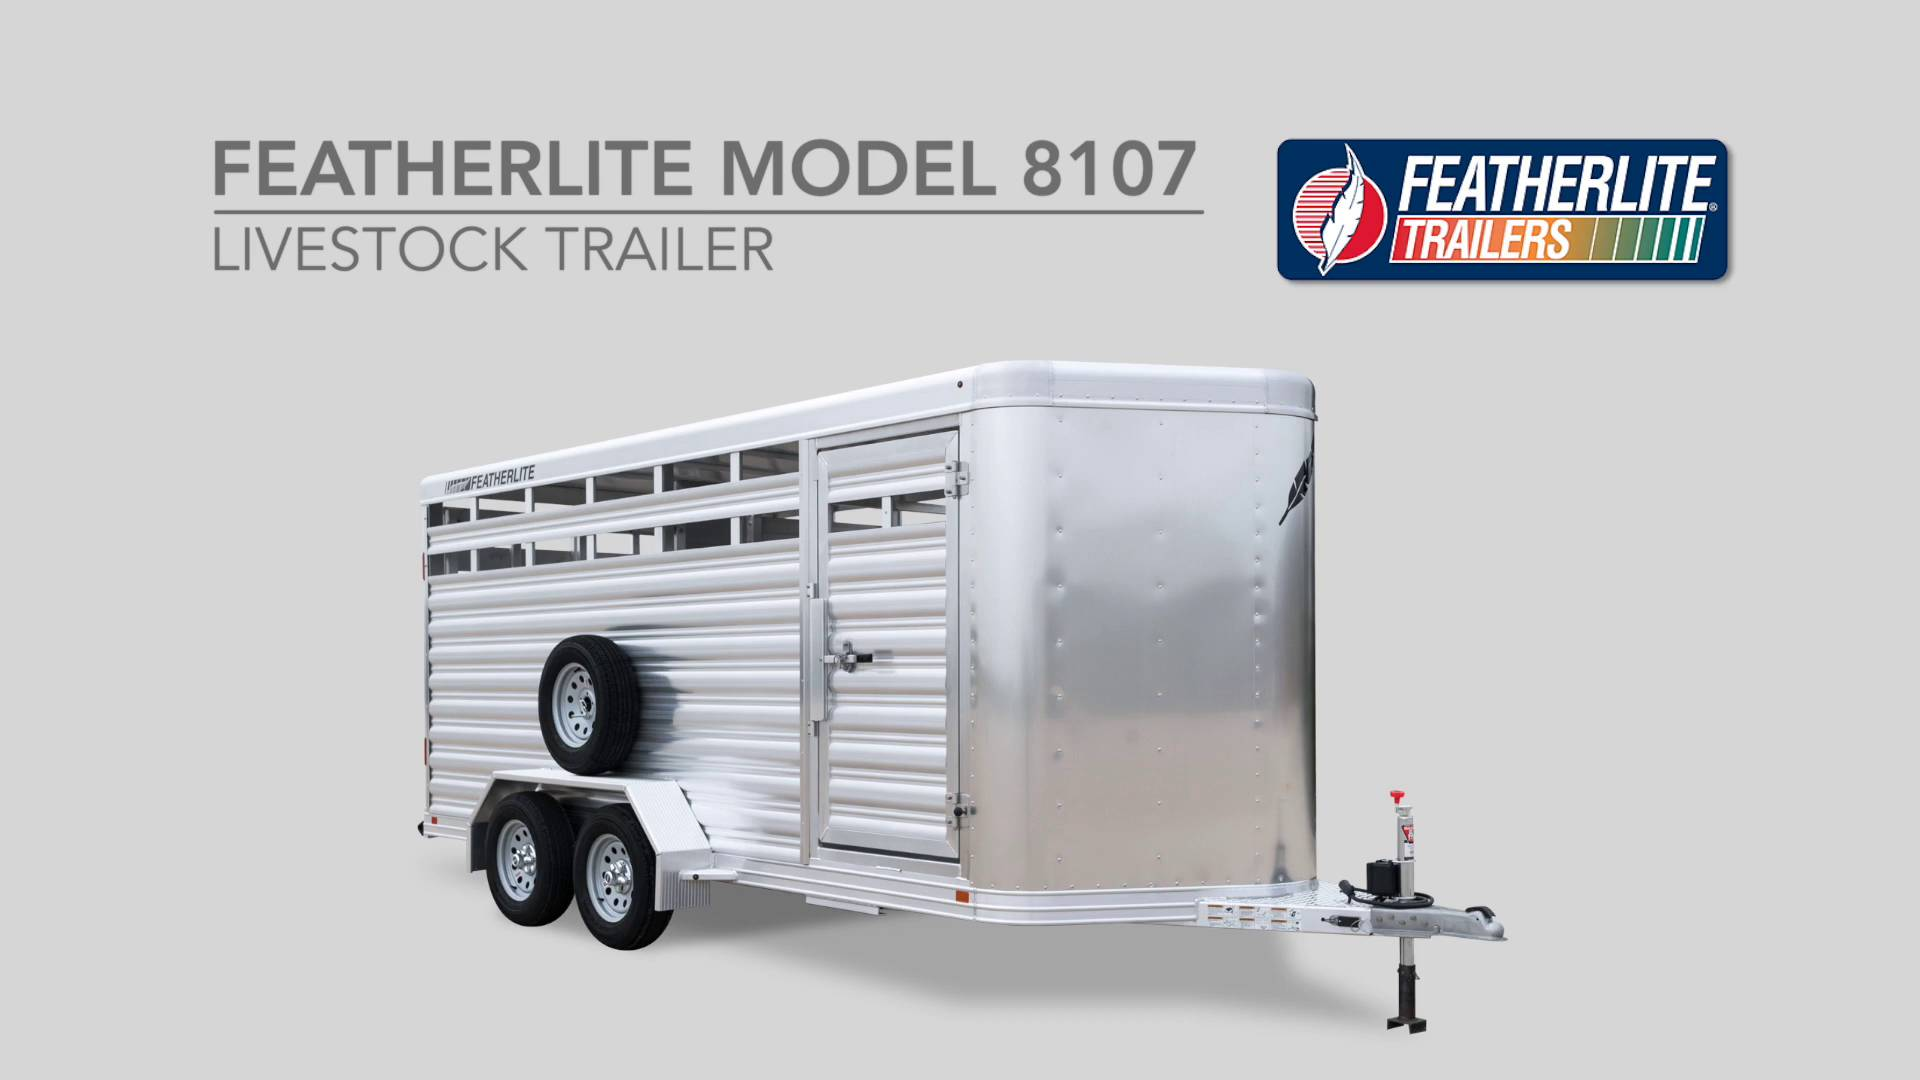 Bumper pull livestock trailers 8107 livestock trailer bumper pull livestock trailers 8107 livestock trailer featherlite stock trailers asfbconference2016 Images